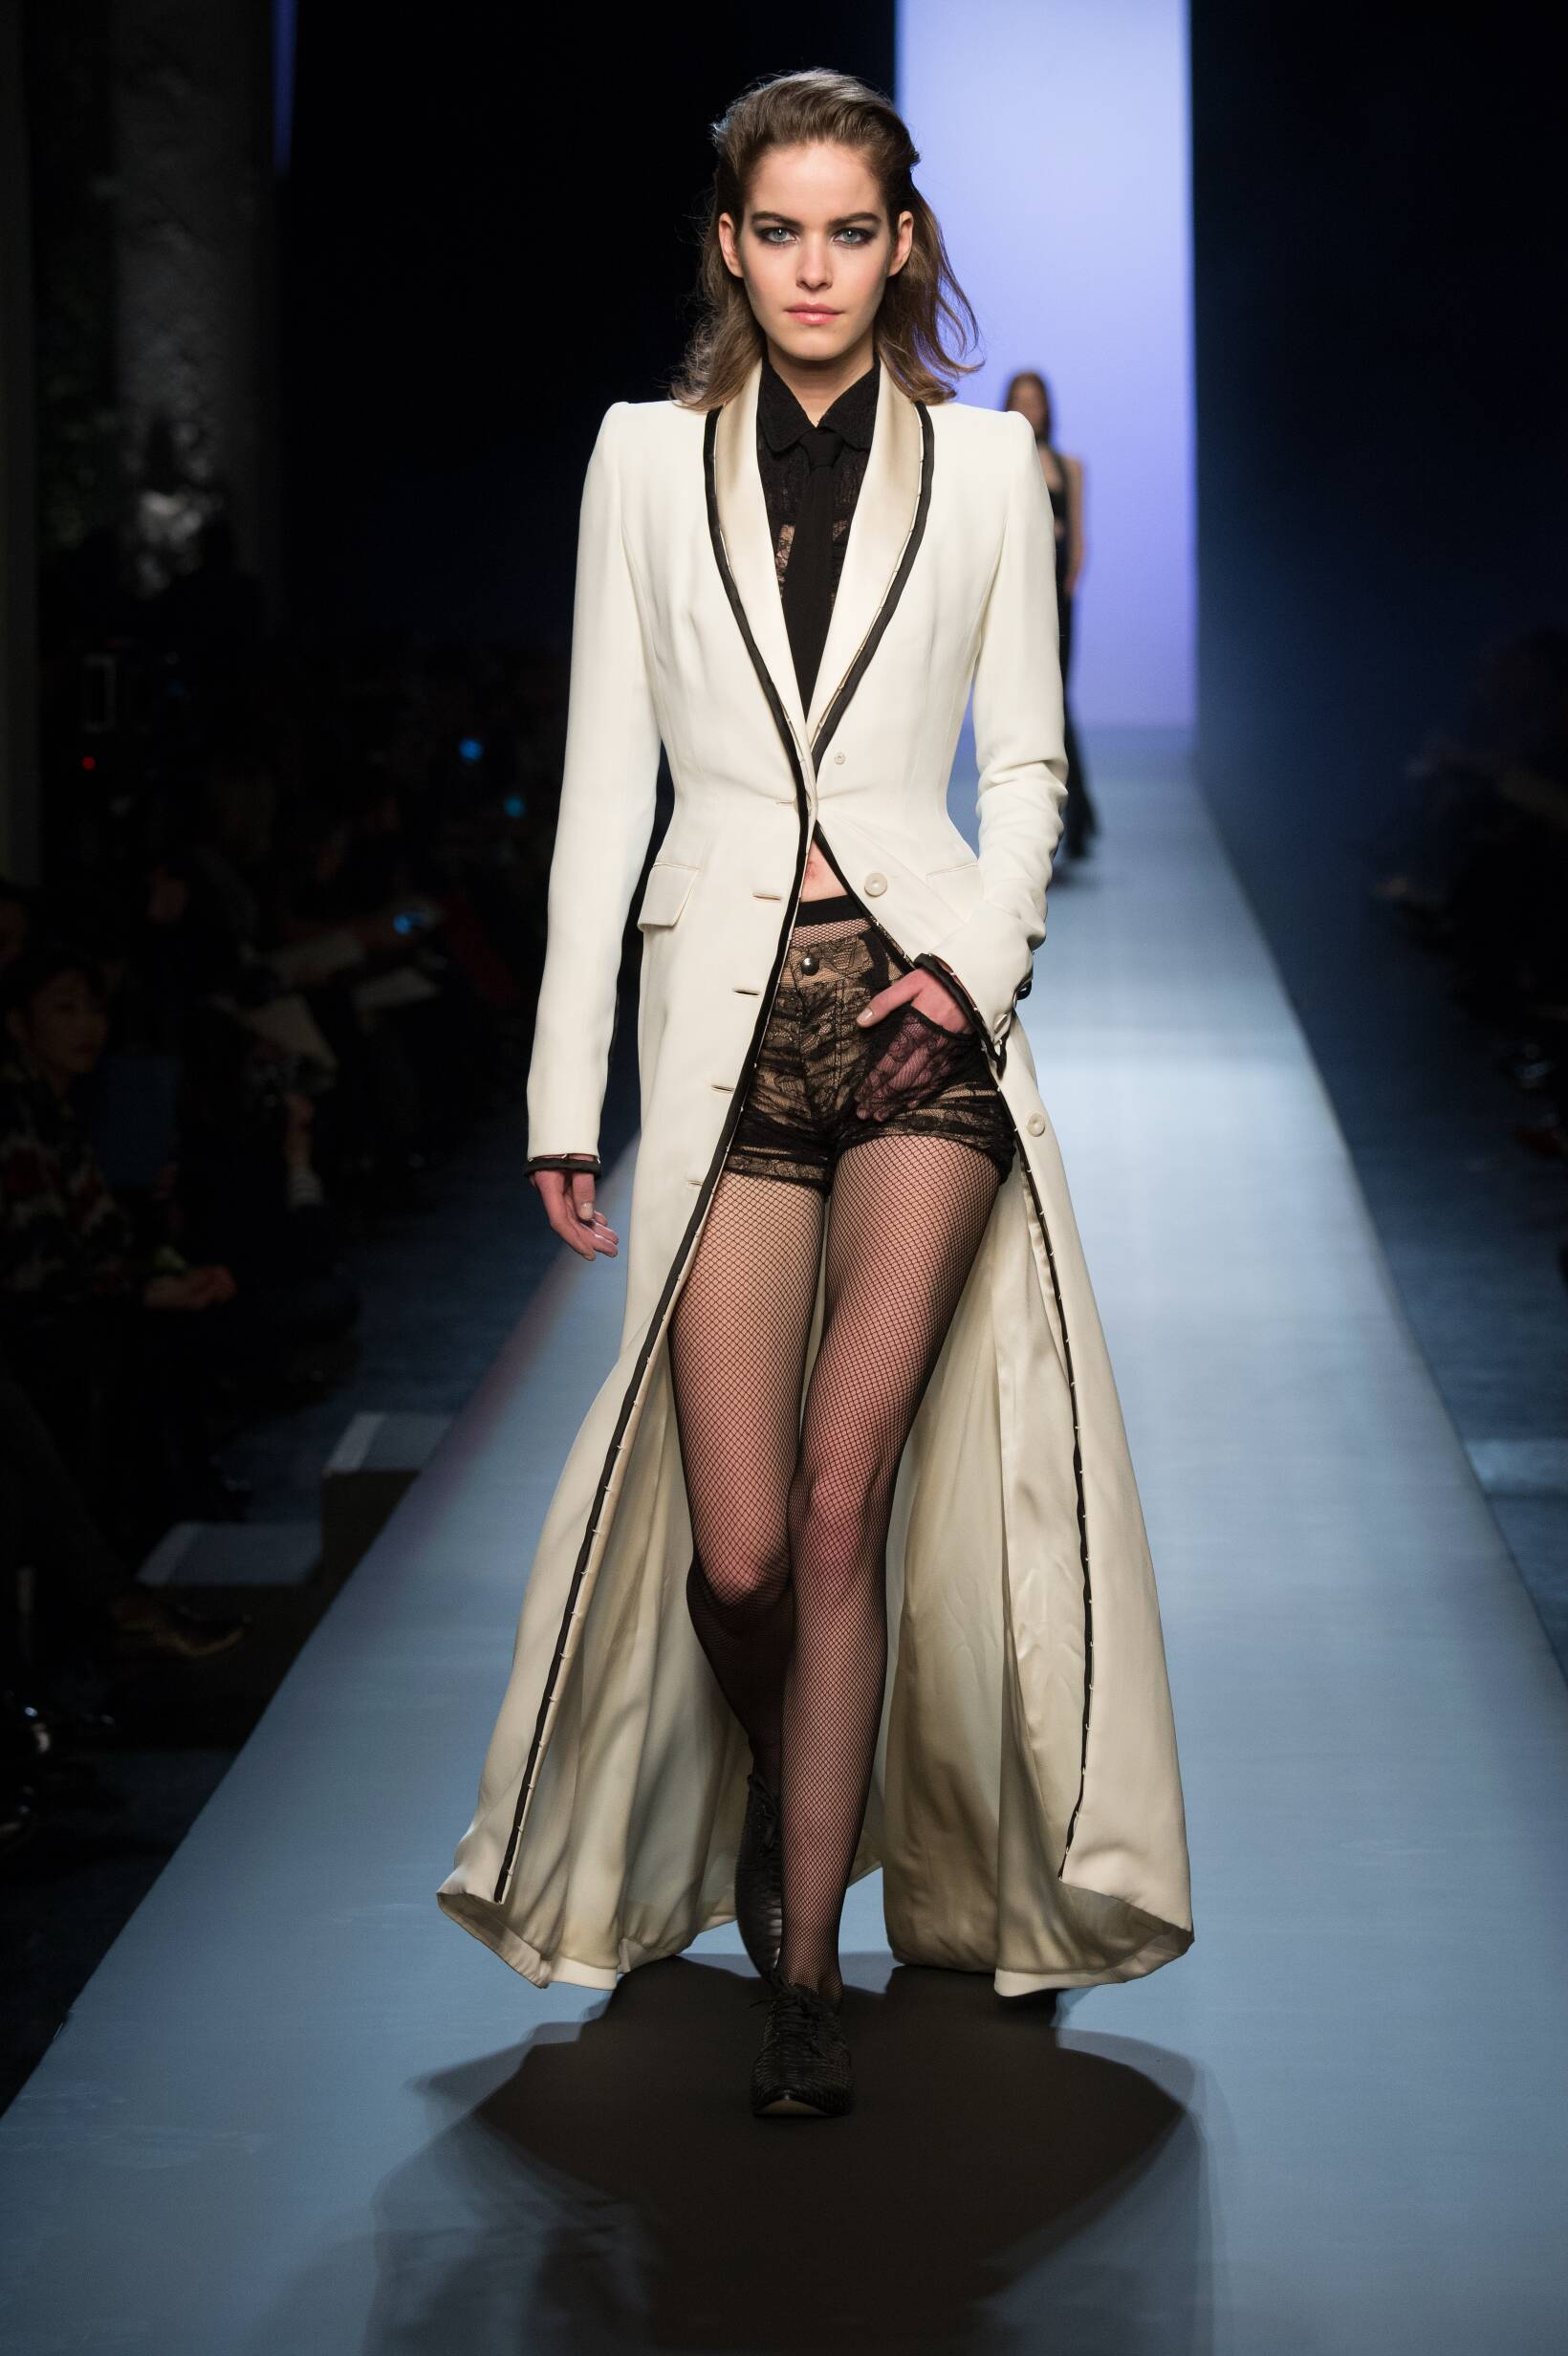 Jean Paul Gaultier Haute Couture Collection Woman 2015